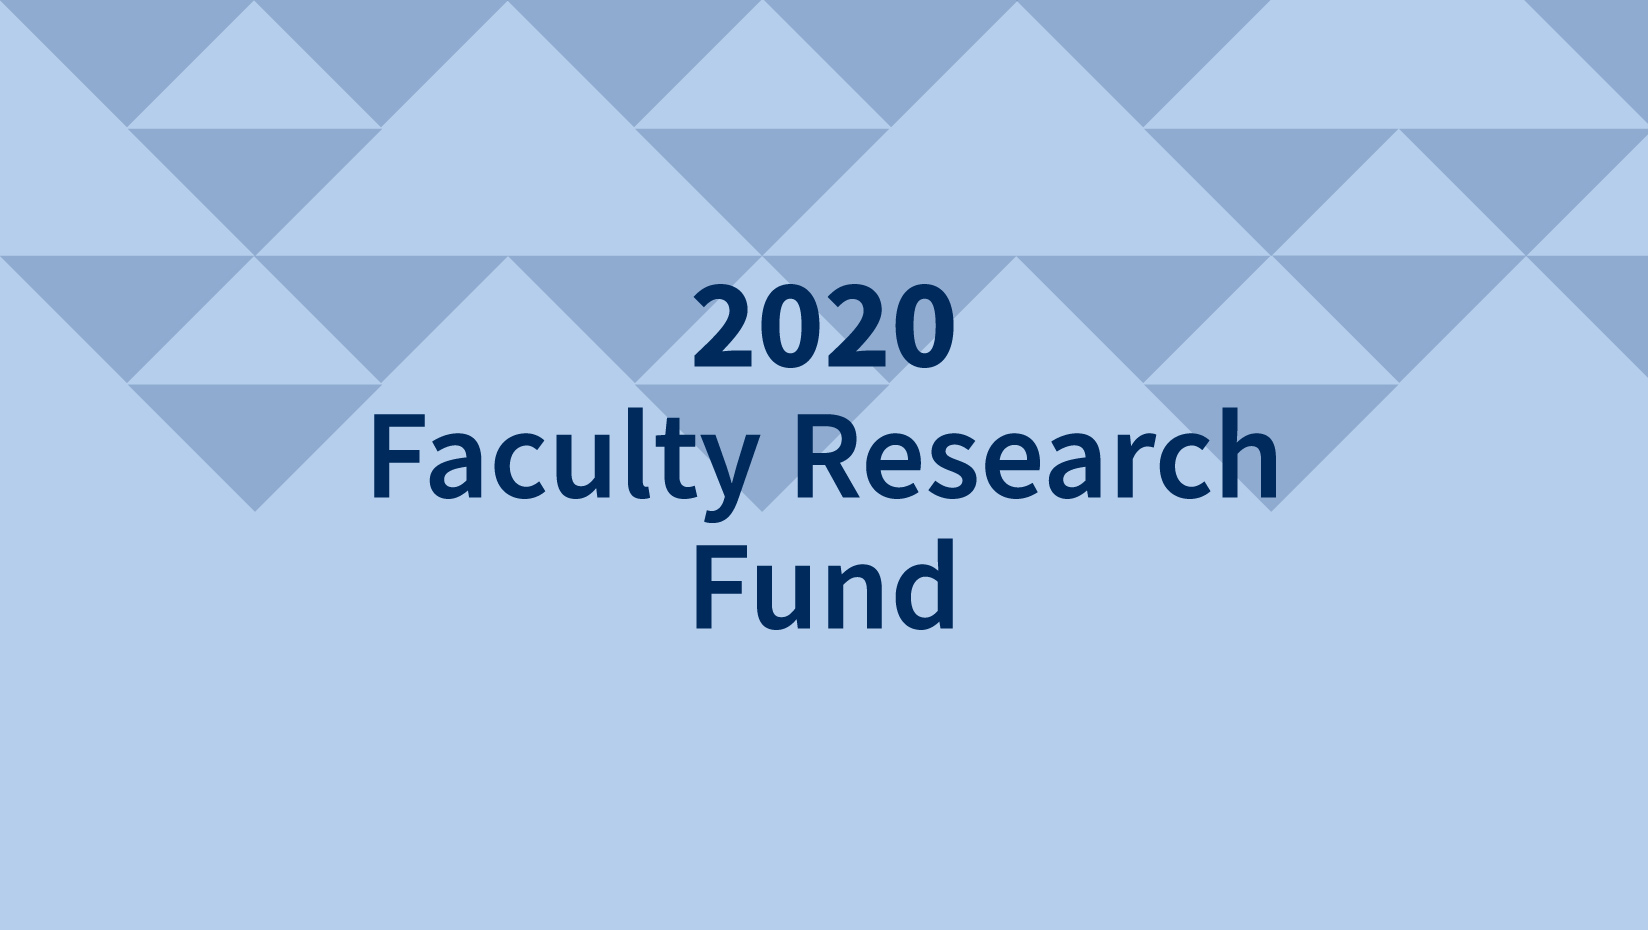 2020 Faculty Research Fund